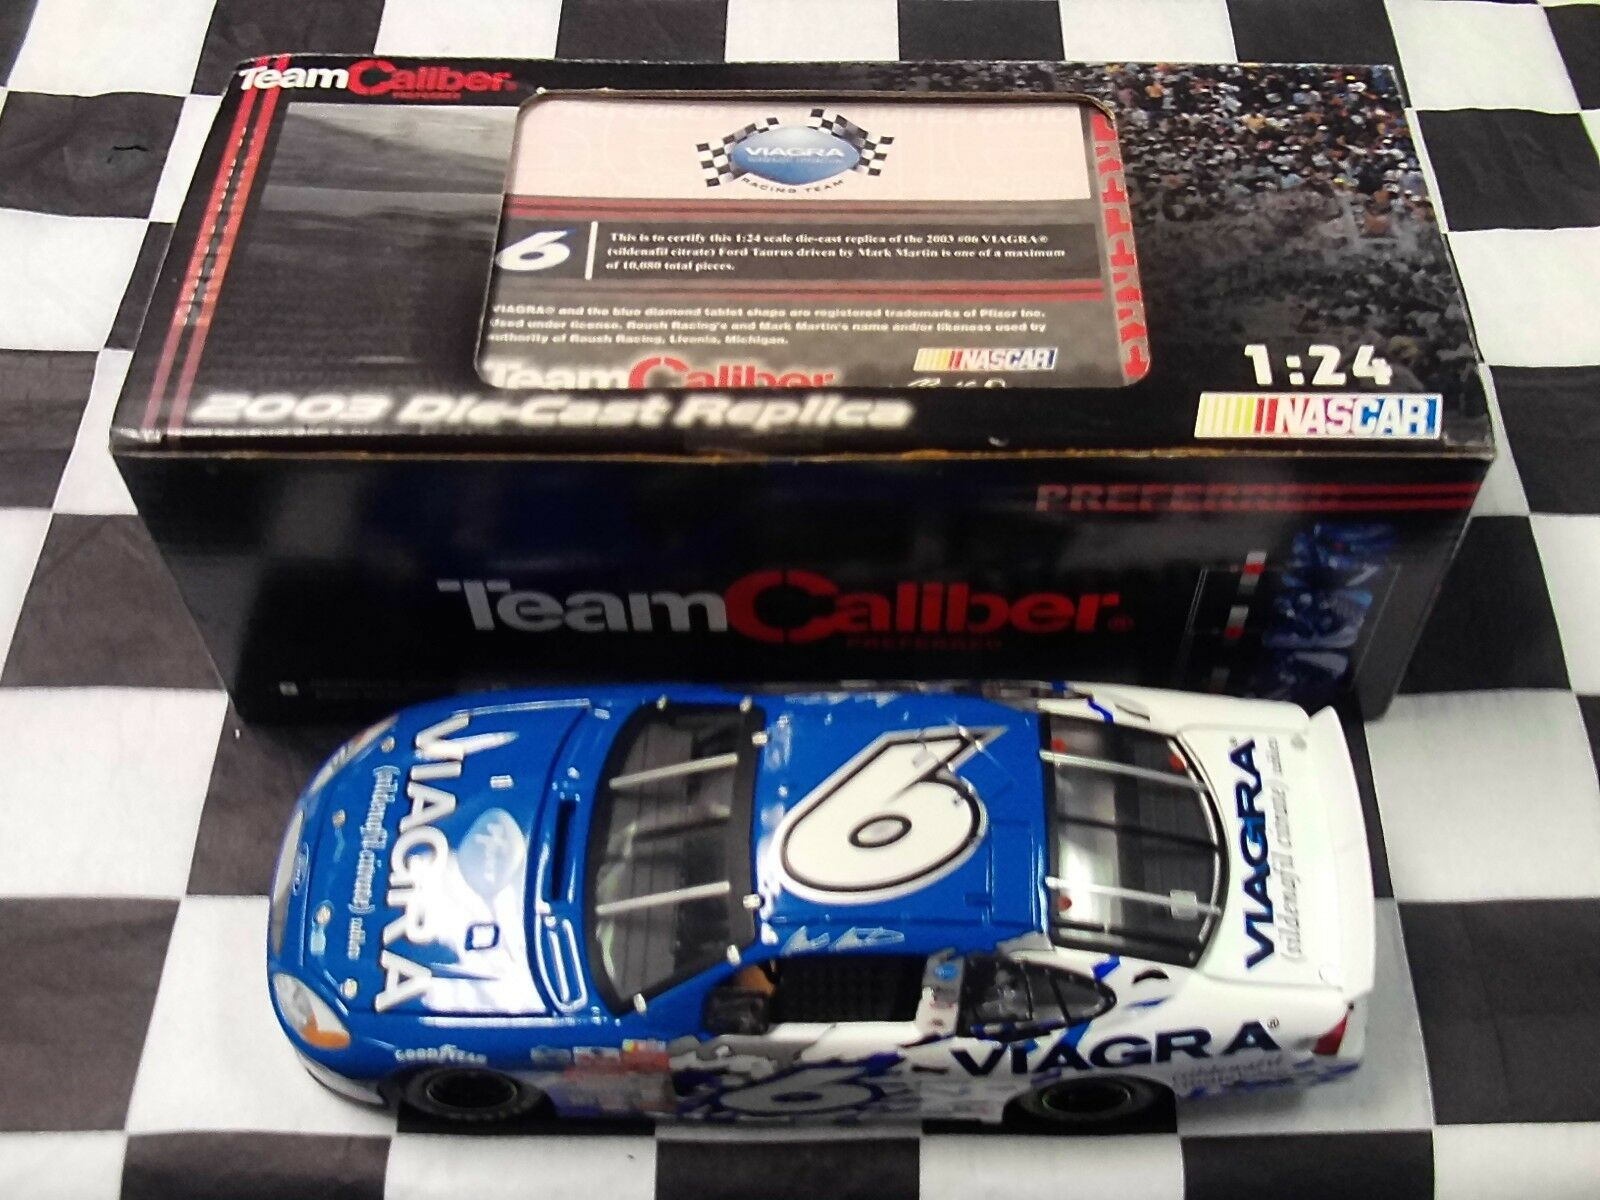 Mark Martin  6 contient 2003 Taurus 1 24 scale Team Caliber MM3P206VW New in Box NASCAR